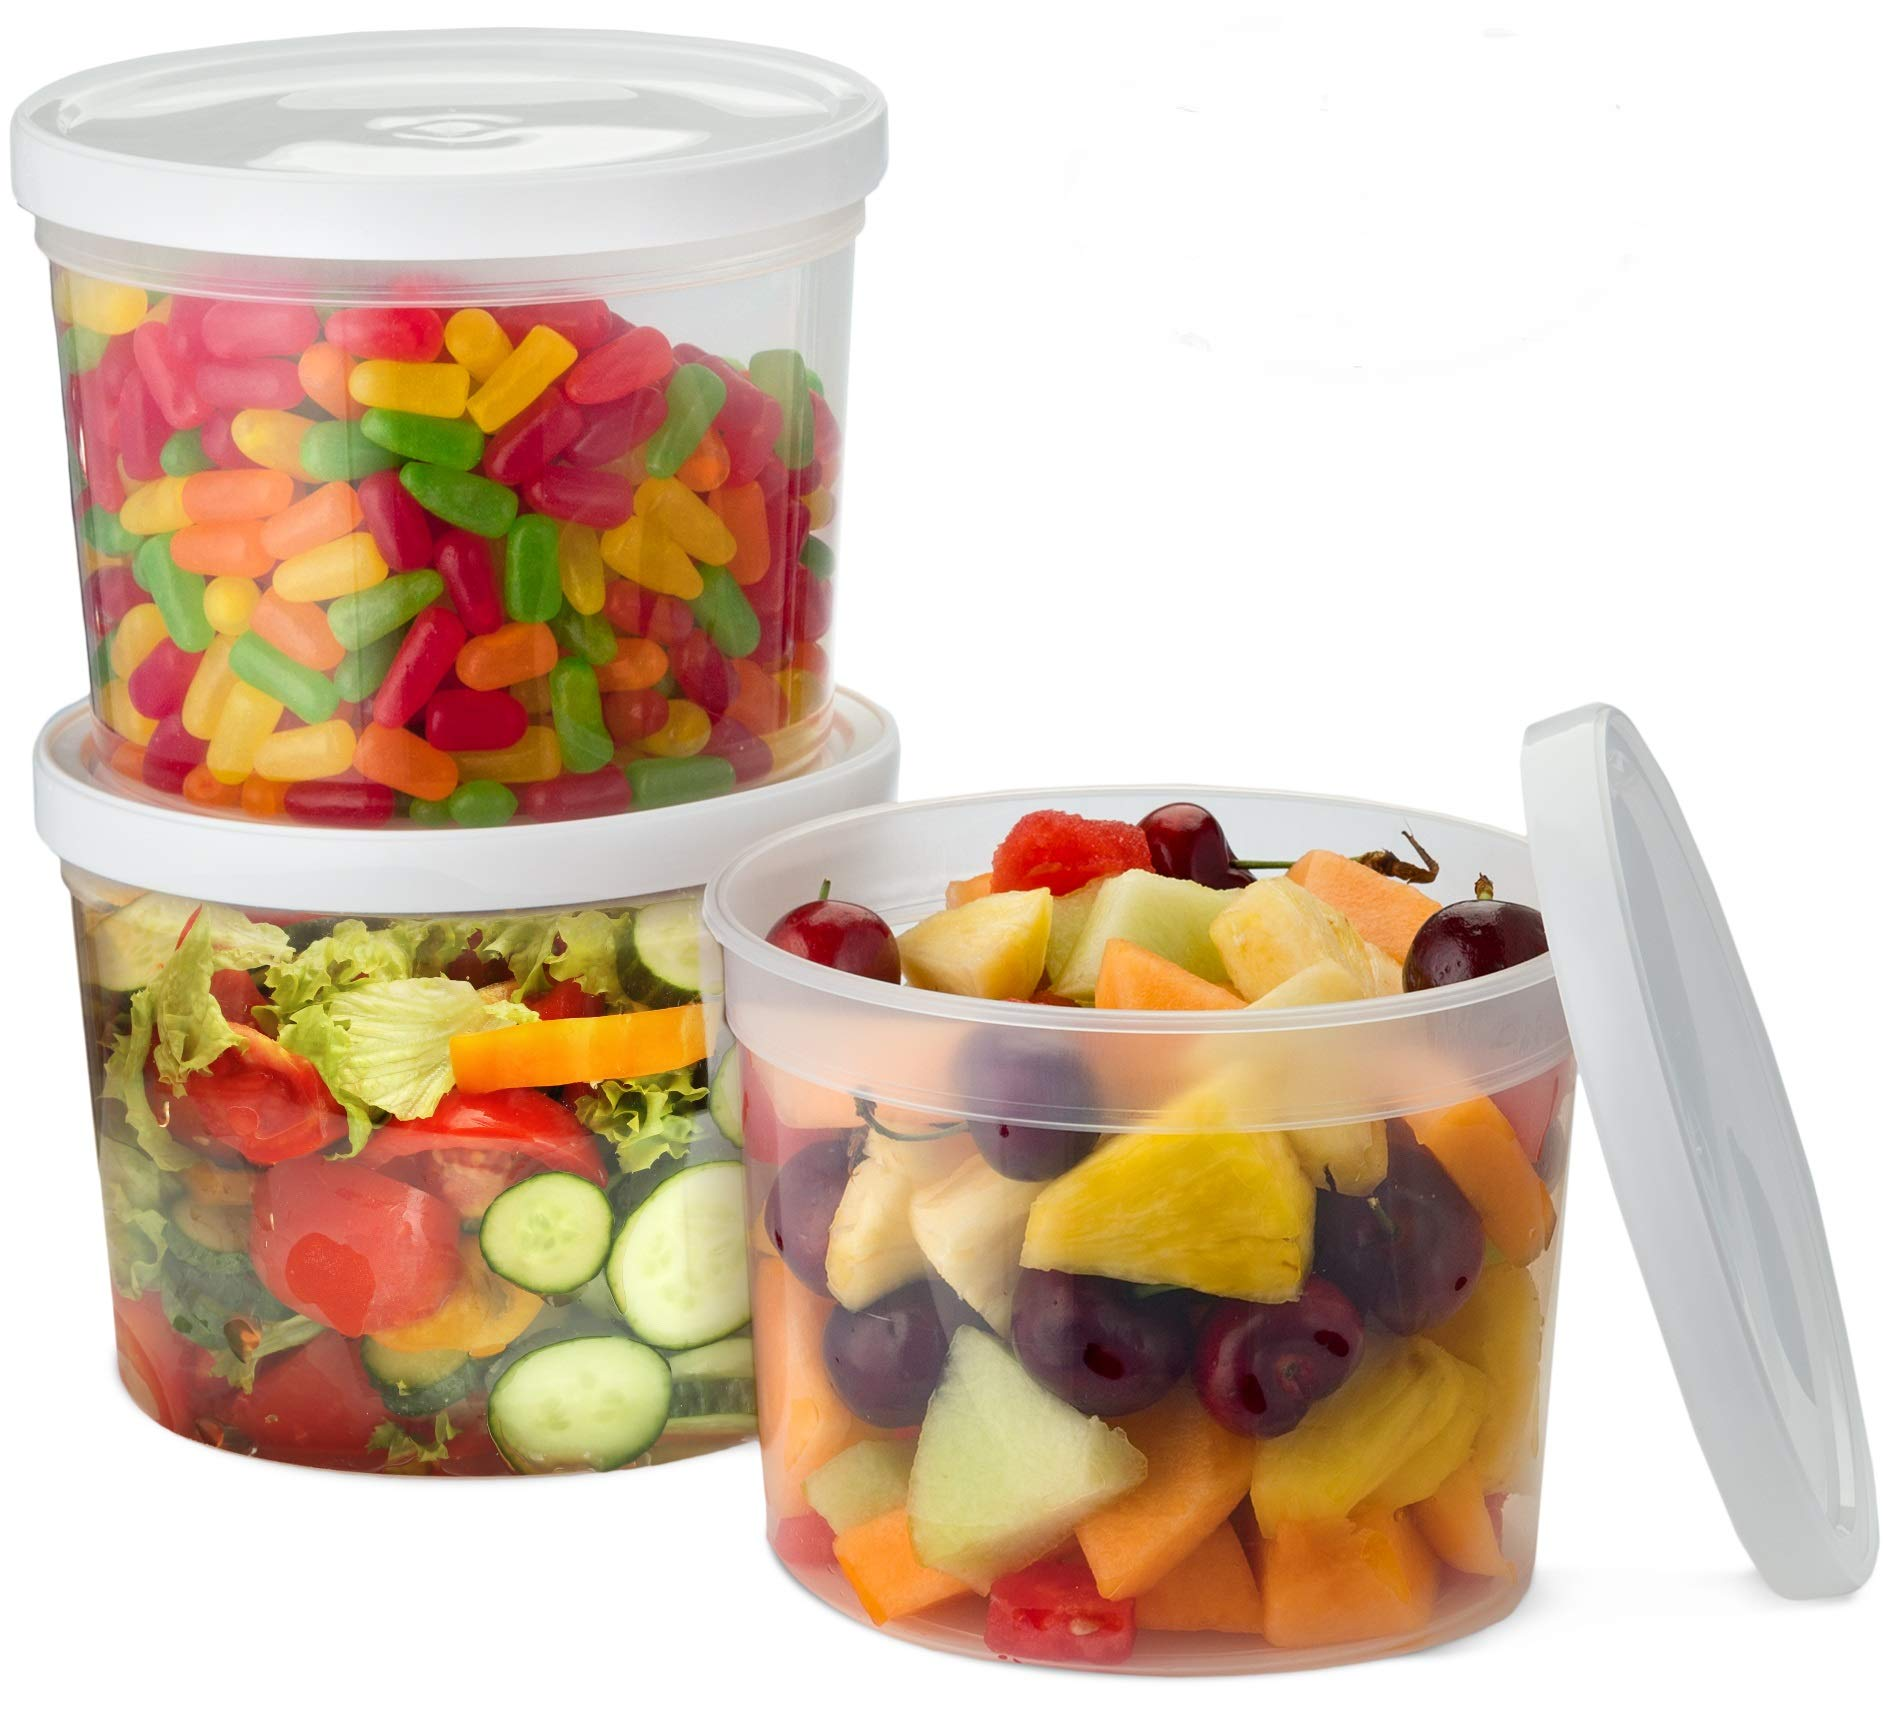 Propack 50 Ounce Food Storage Deli Container with White Lids Pack of 24 Combo Pack by Propack